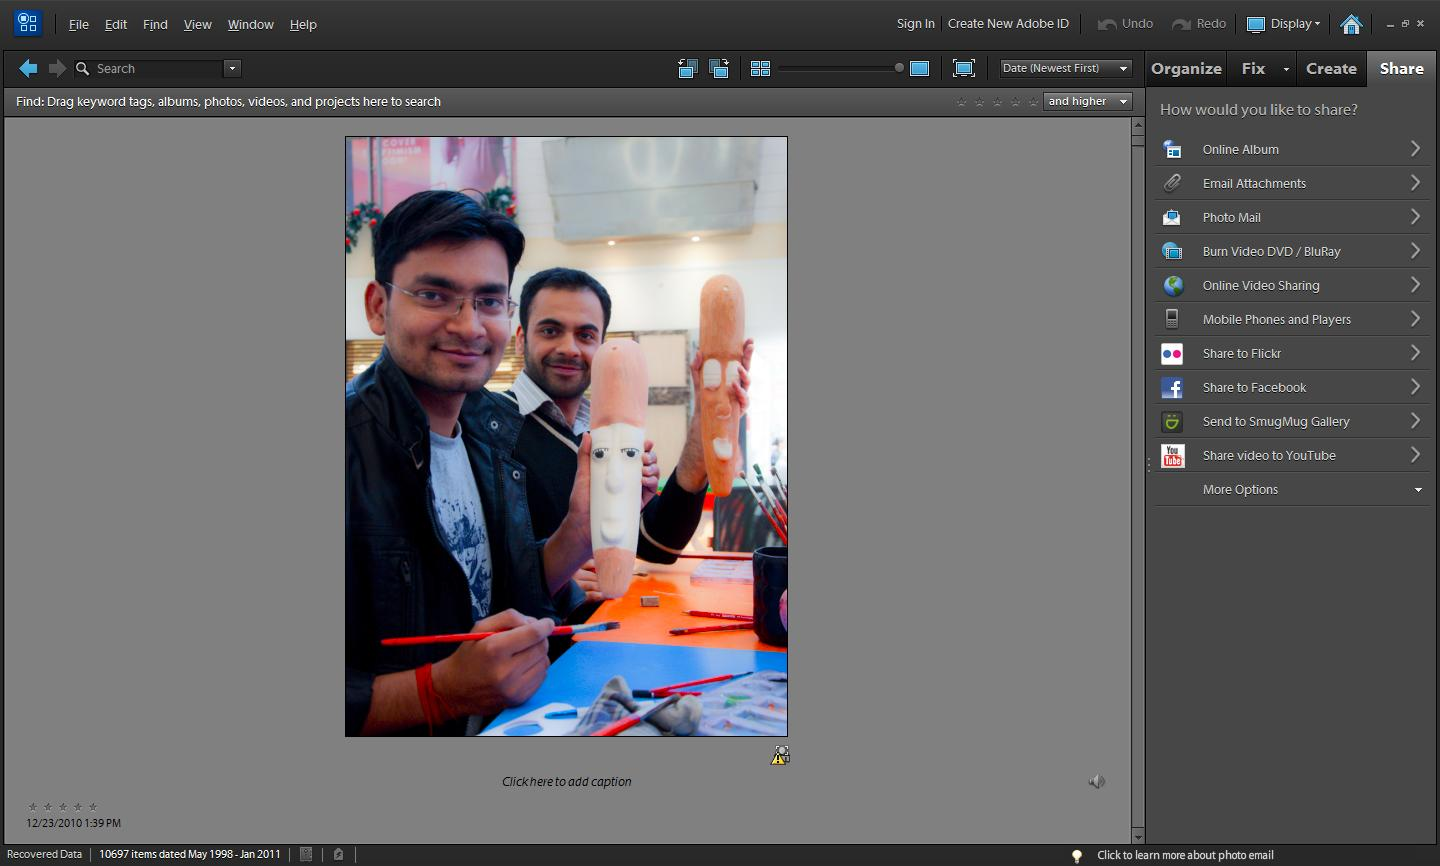 Face tagging on Facebook through Organizer in Adobe Photoshop Elements Make Location Tagging on Your Photos Easy with Photoshop Elements